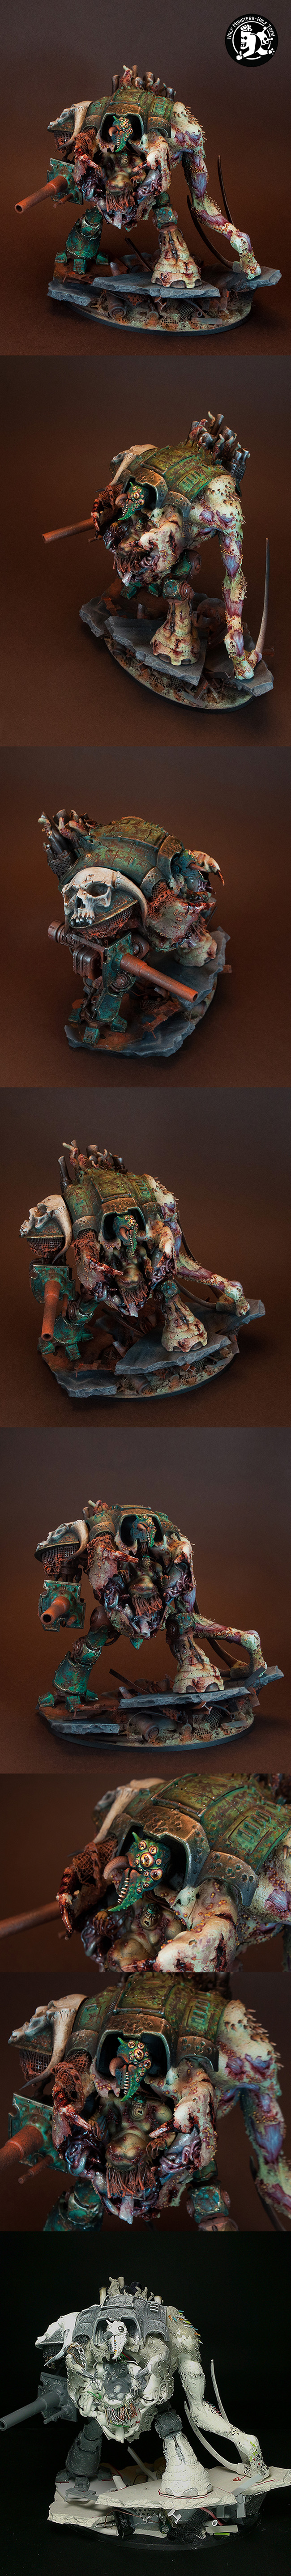 Imperial Knight of Nurgle